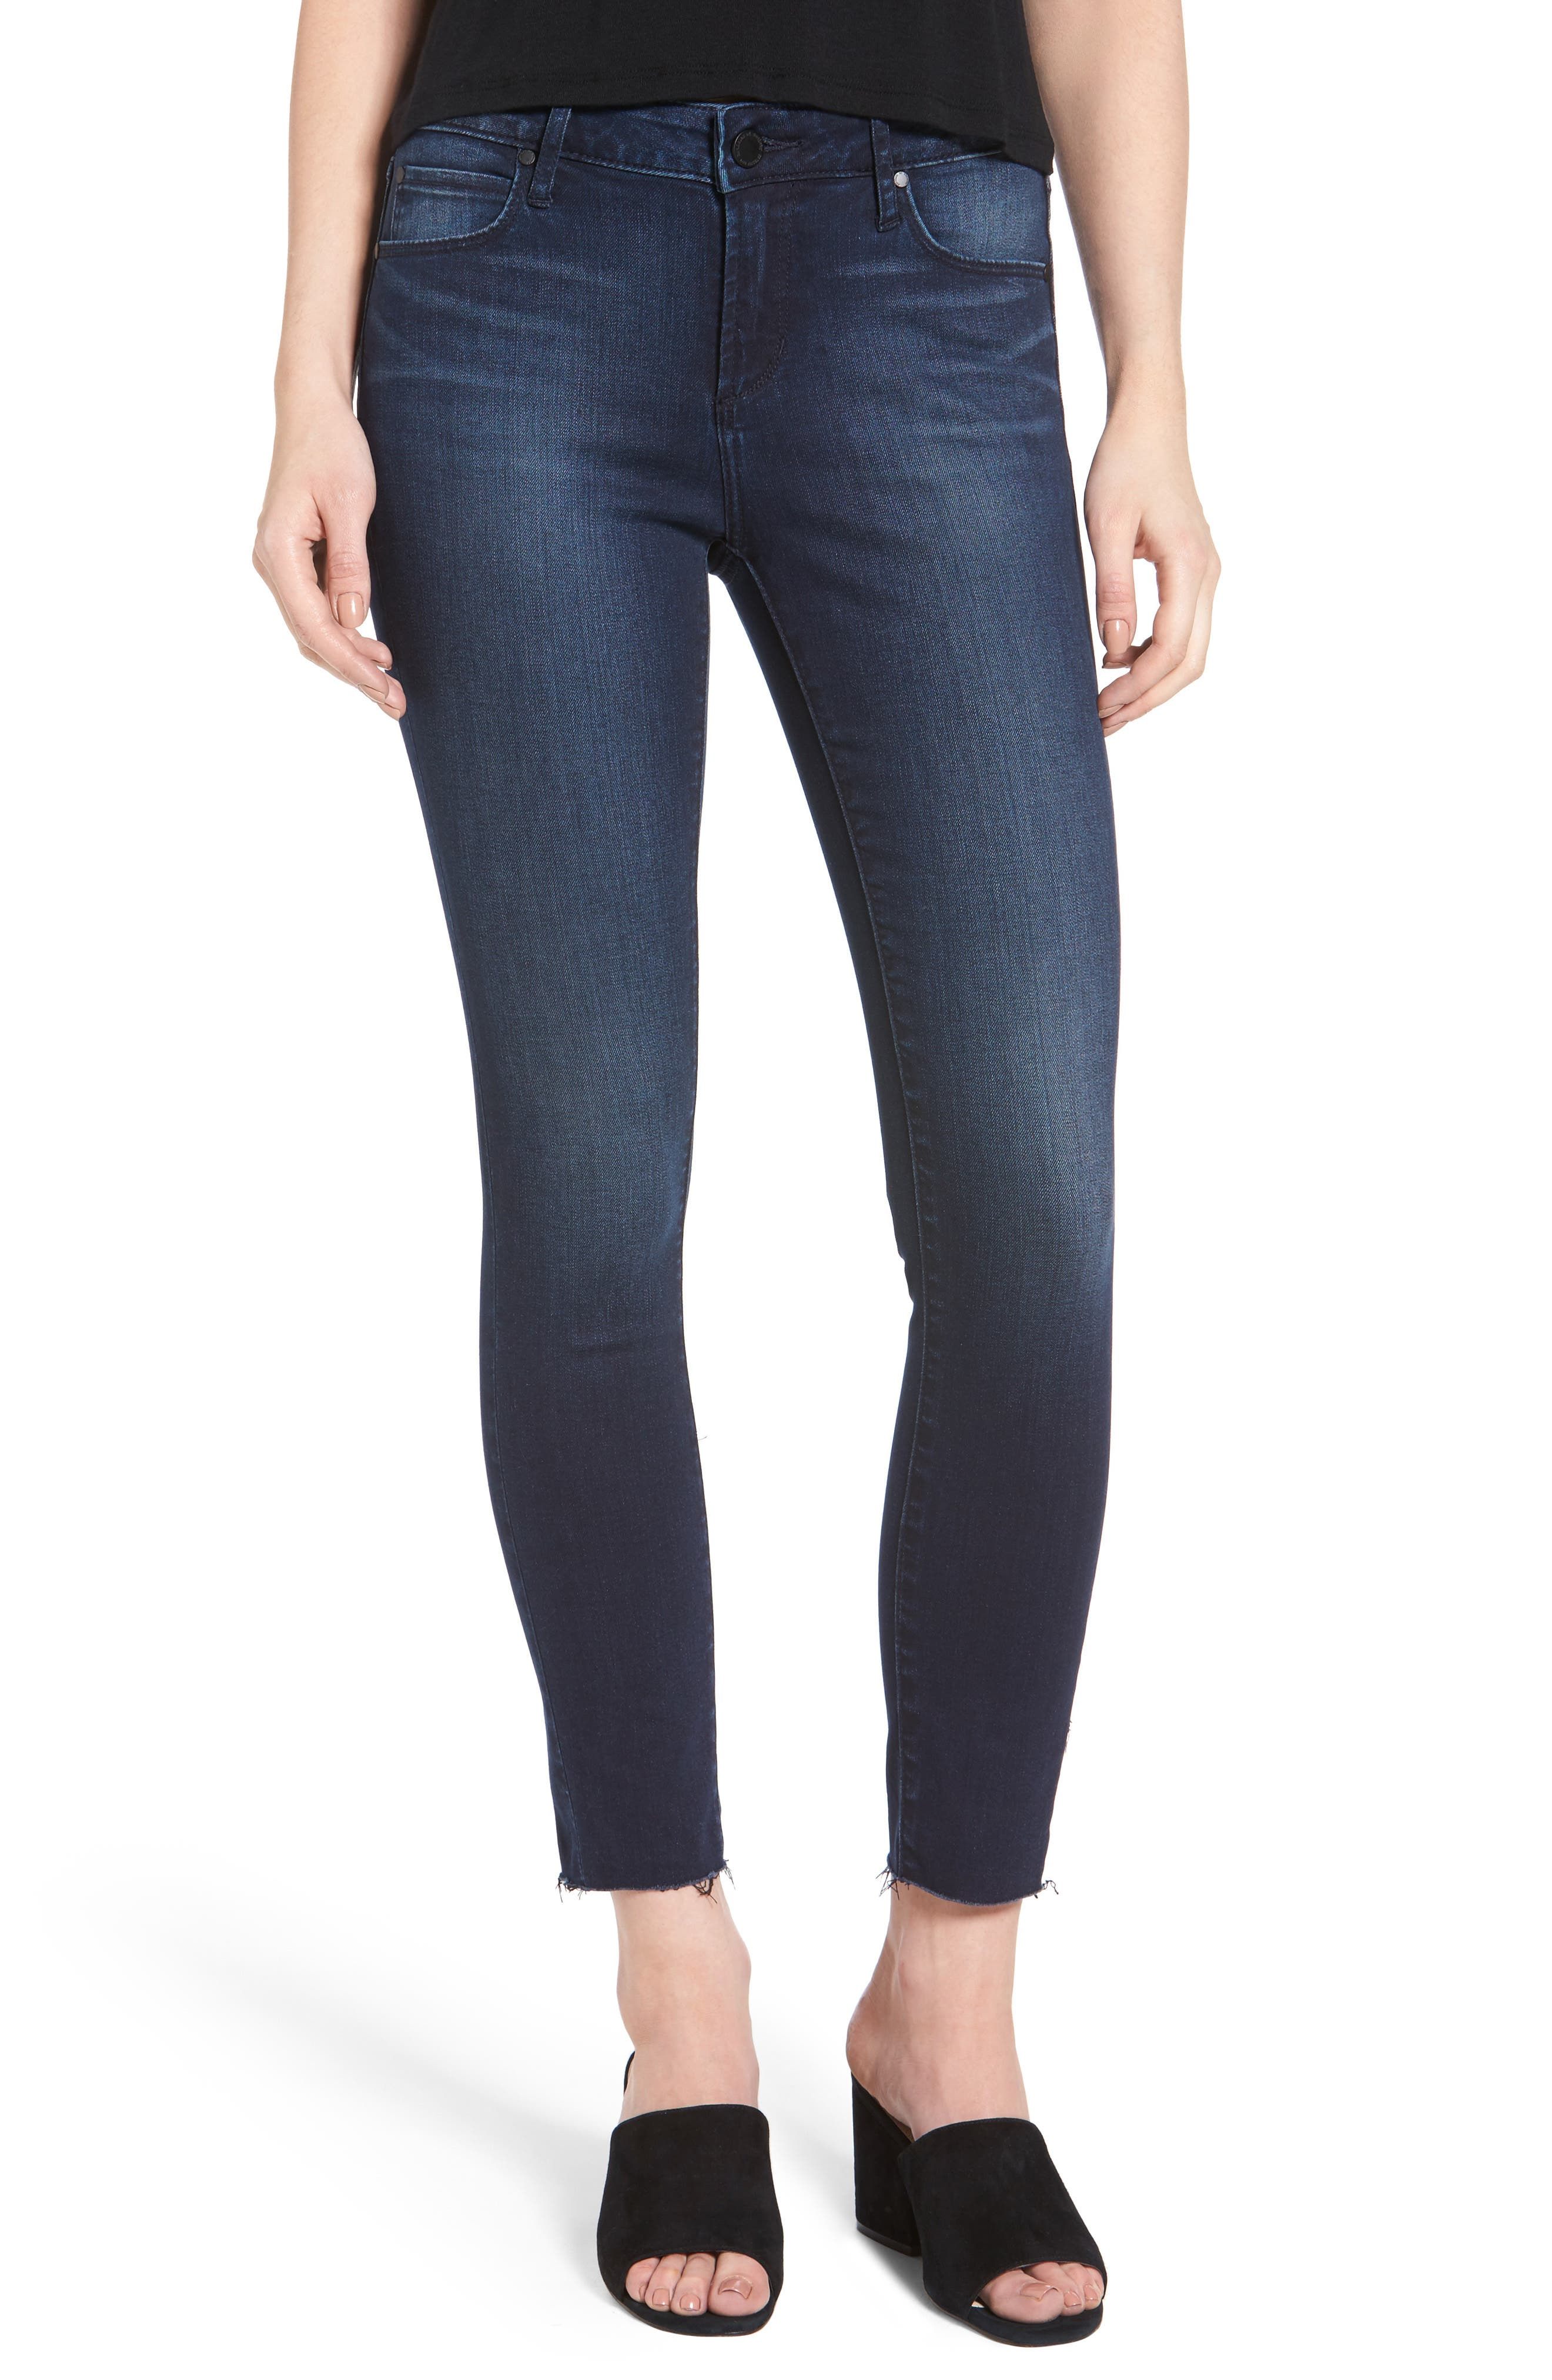 ARTICLES OF SOCIETY Carly Crop Skinny Jeans, Main, color, 499